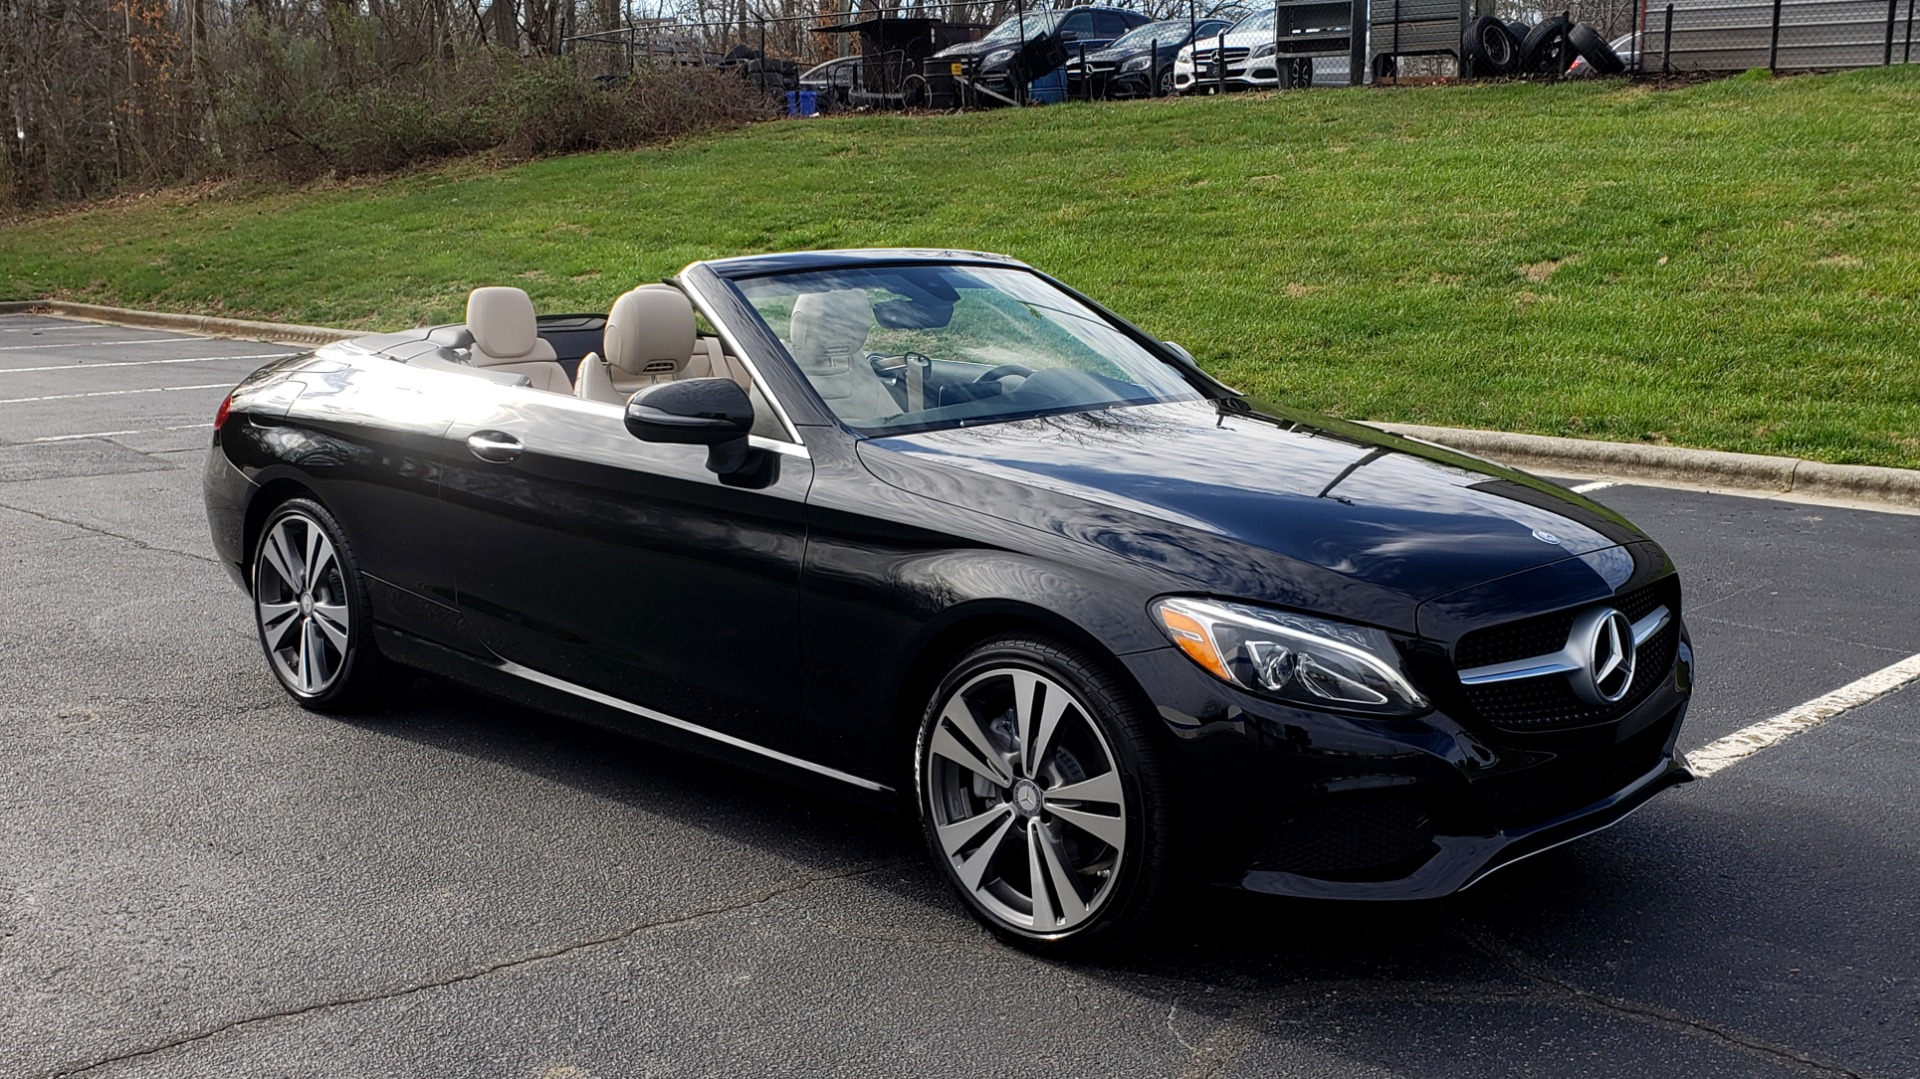 Used 2017 Mercedes-Benz C-Class C 300 CABRIOLET SPORT / PREMIUM / NAV / BURMESTER SOUND for sale Sold at Formula Imports in Charlotte NC 28227 9